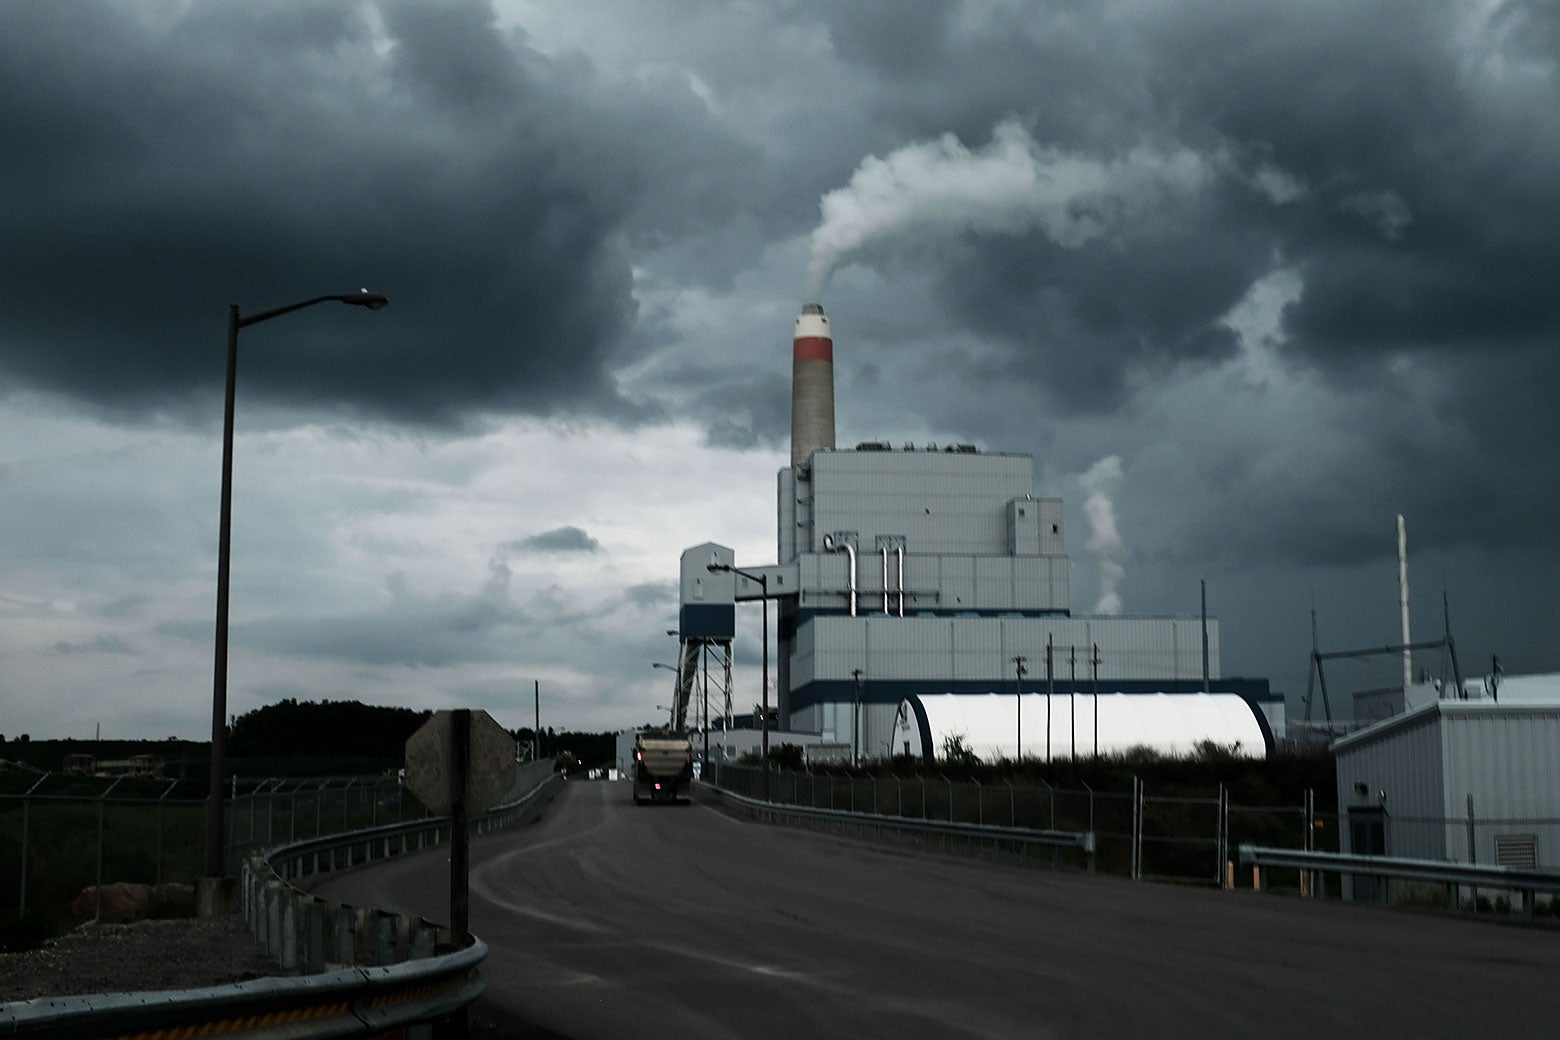 A power plant besides a road.